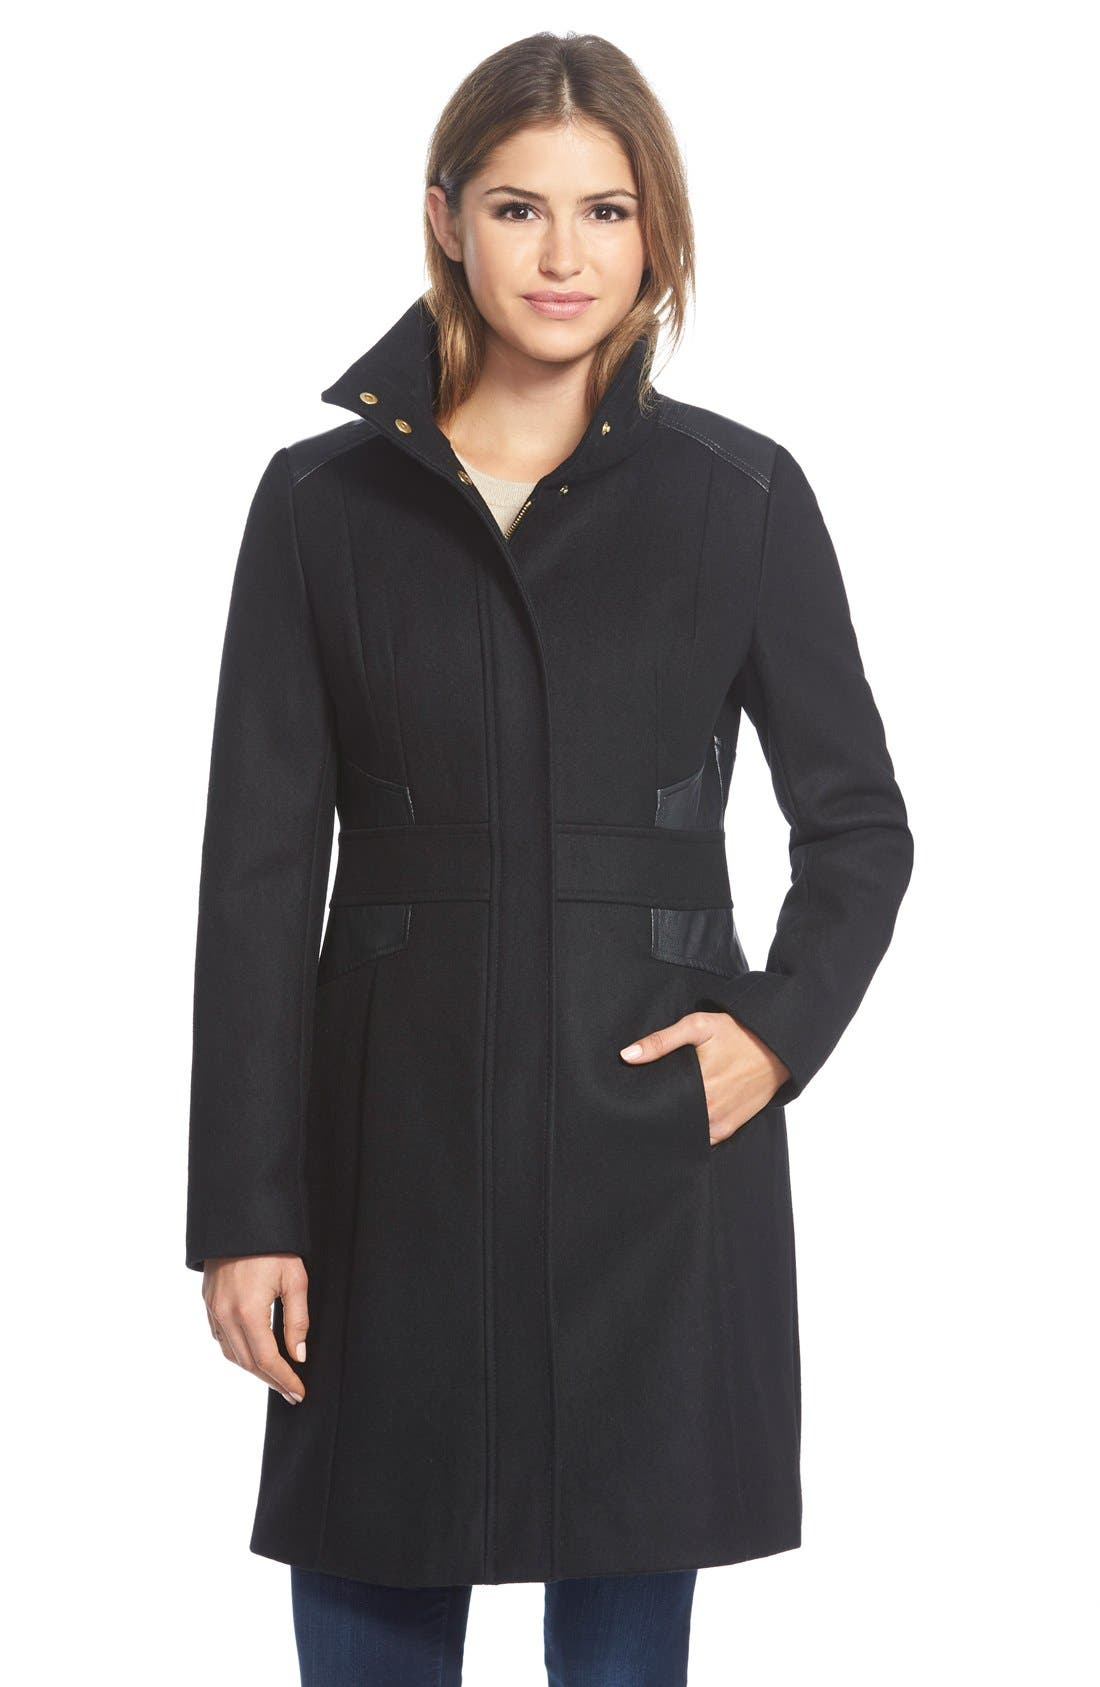 Wool Blend Coat with Faux Leather Trim,                         Main,                         color, Black